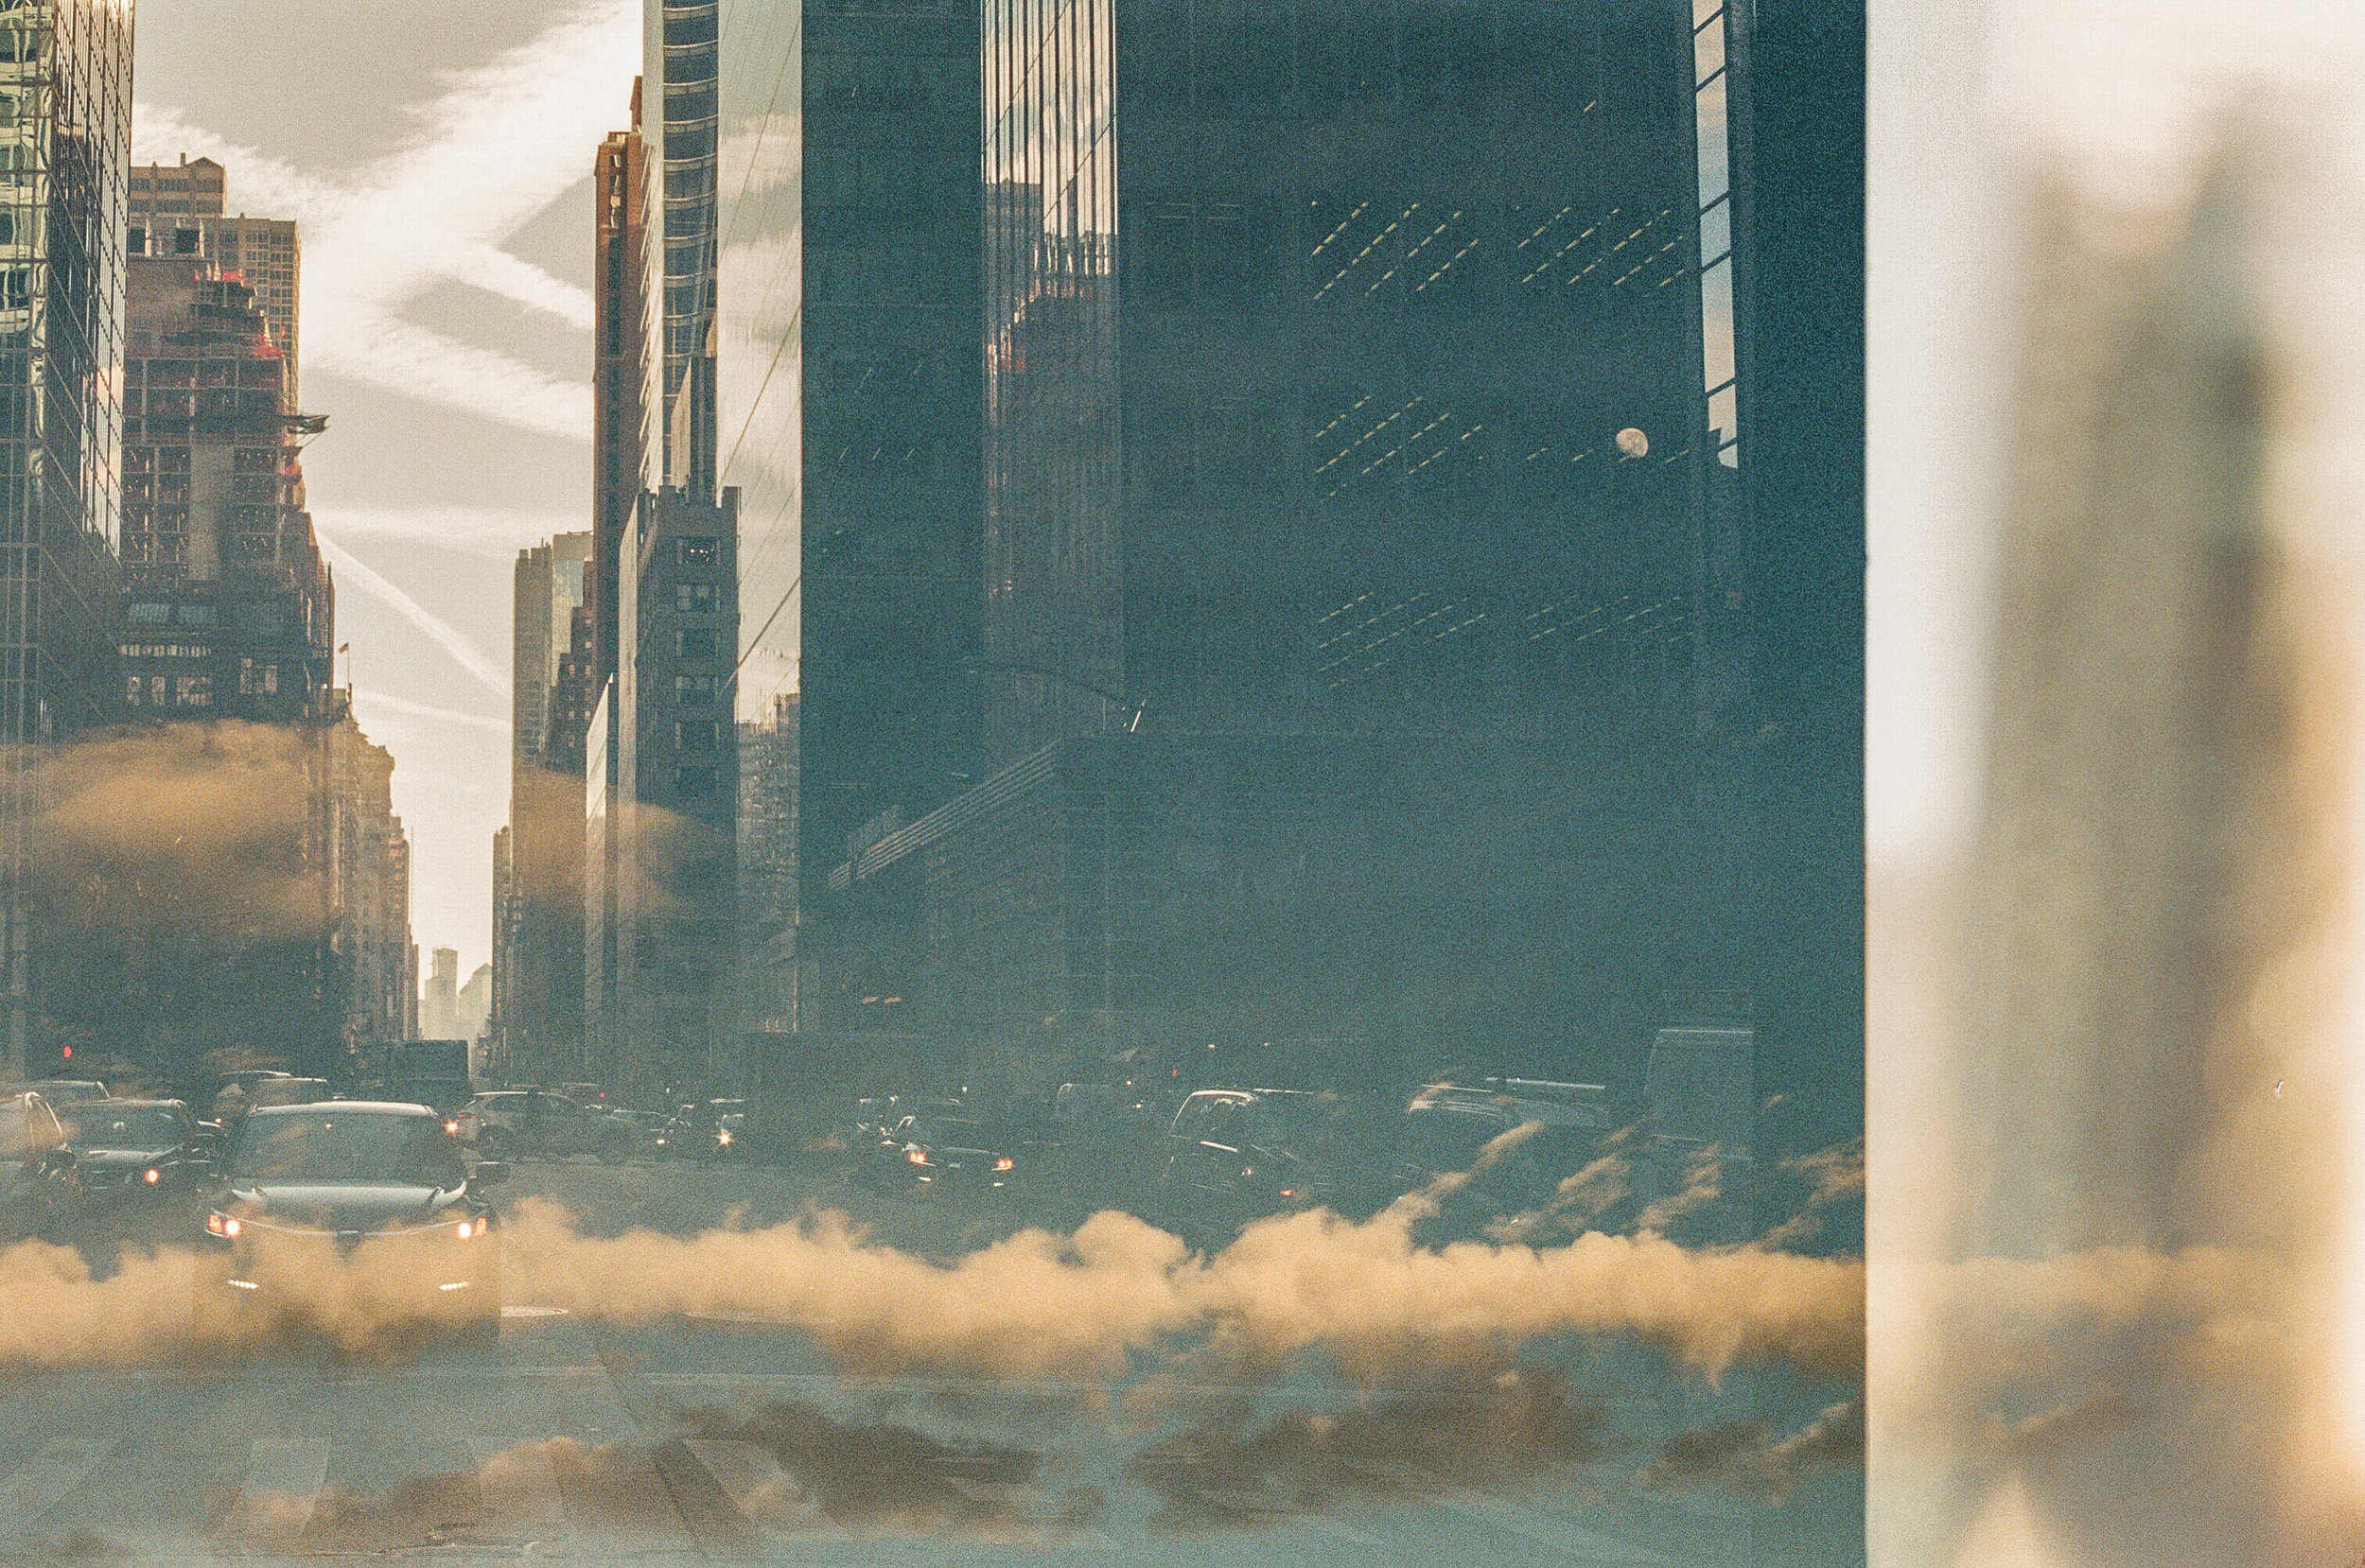 new york and south africa 35mm film double exposures13